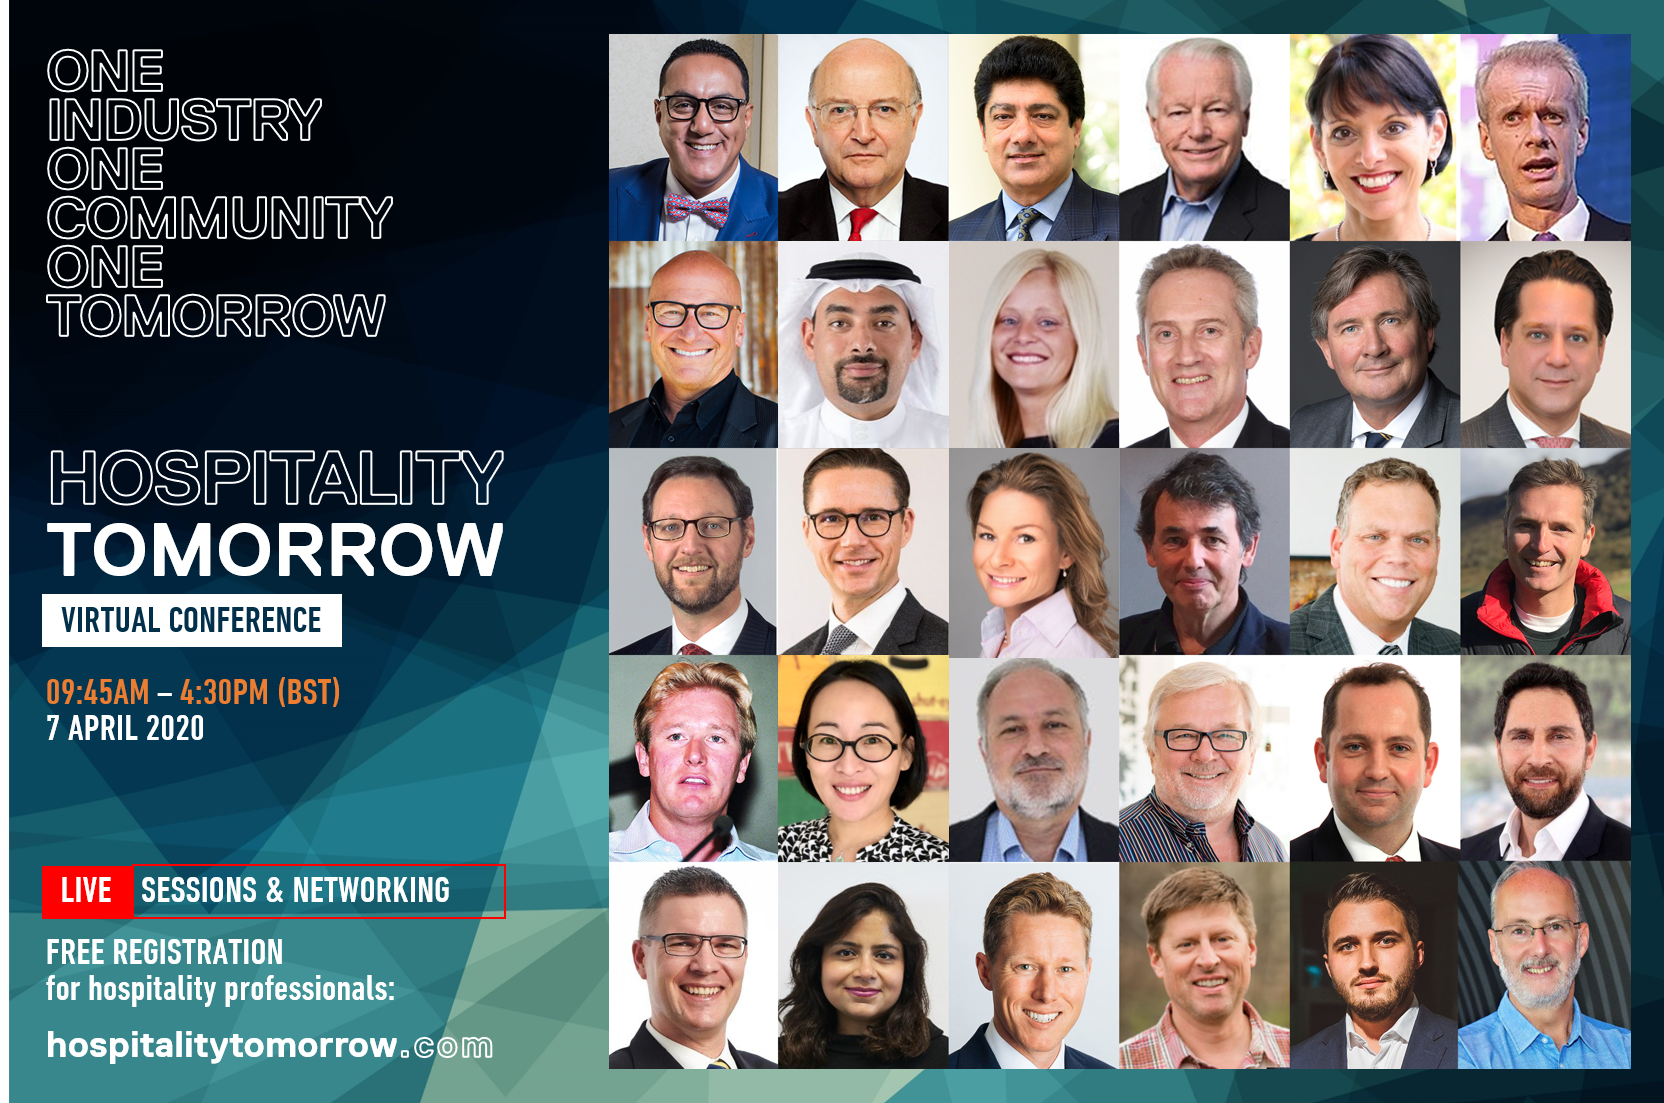 Over 3,000 register for virtual hospitality summit